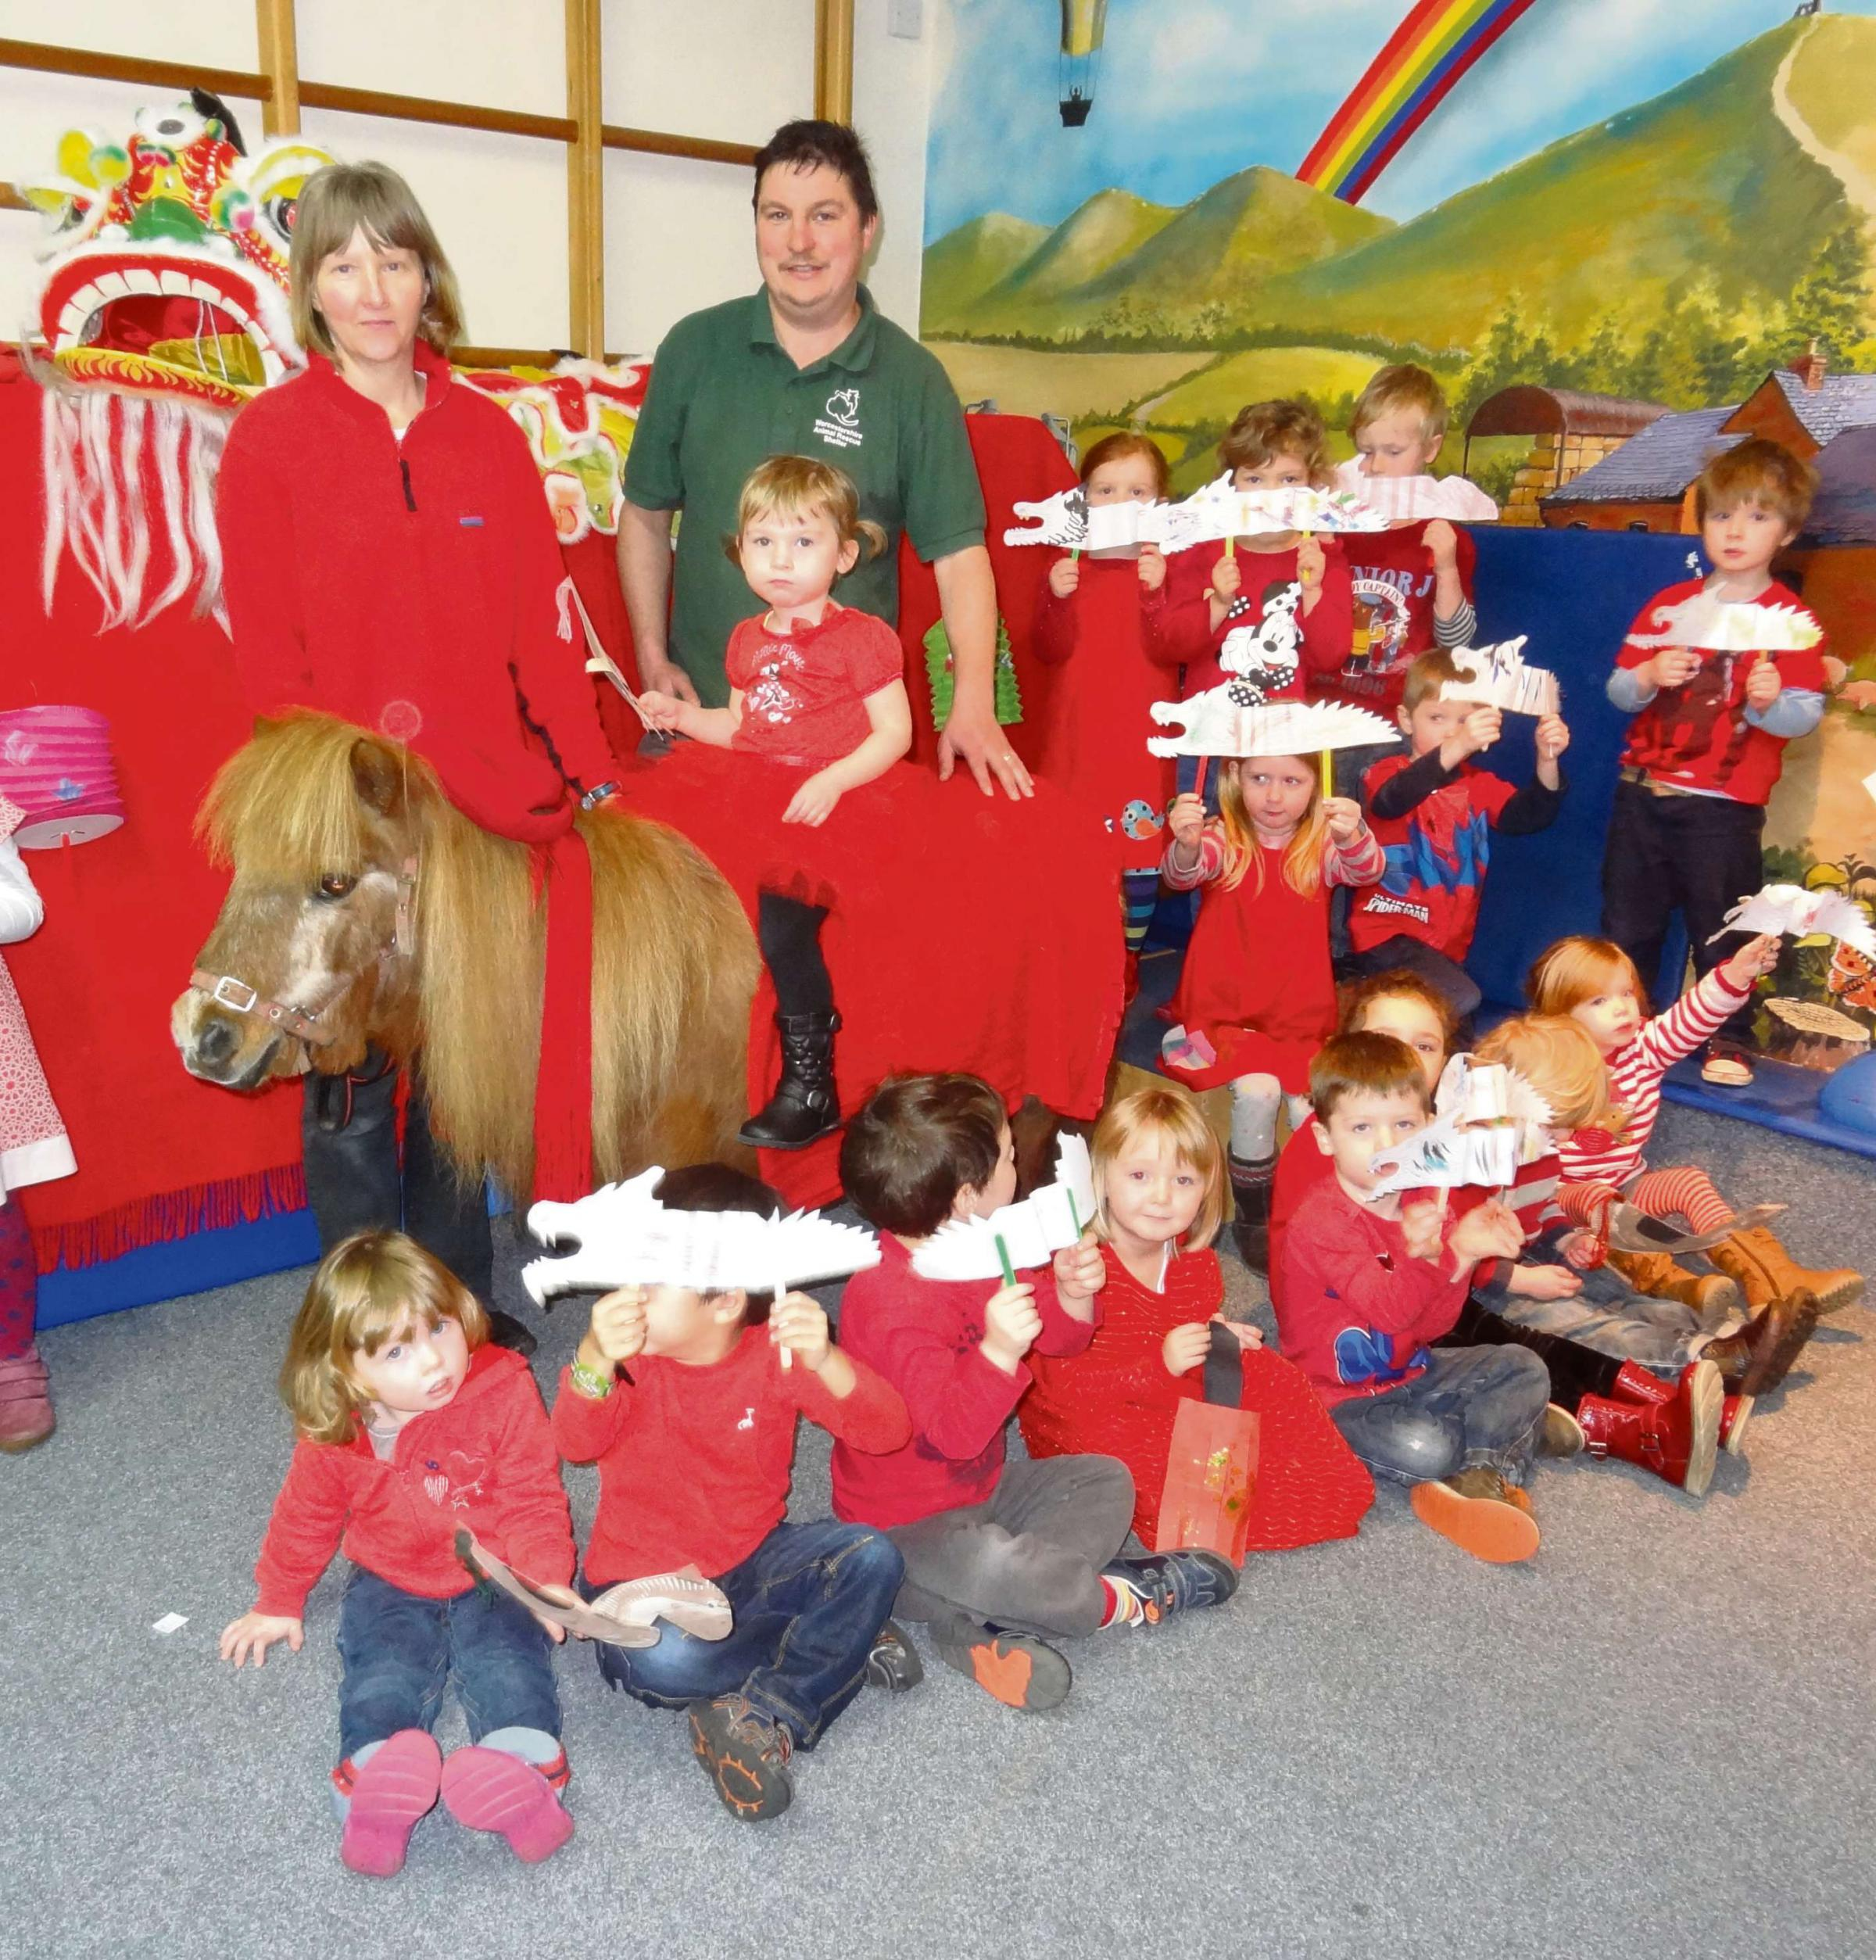 The children were joined by Helen Deamer, equine specialist at Madresfield Early Years Centre and Darren Rooker